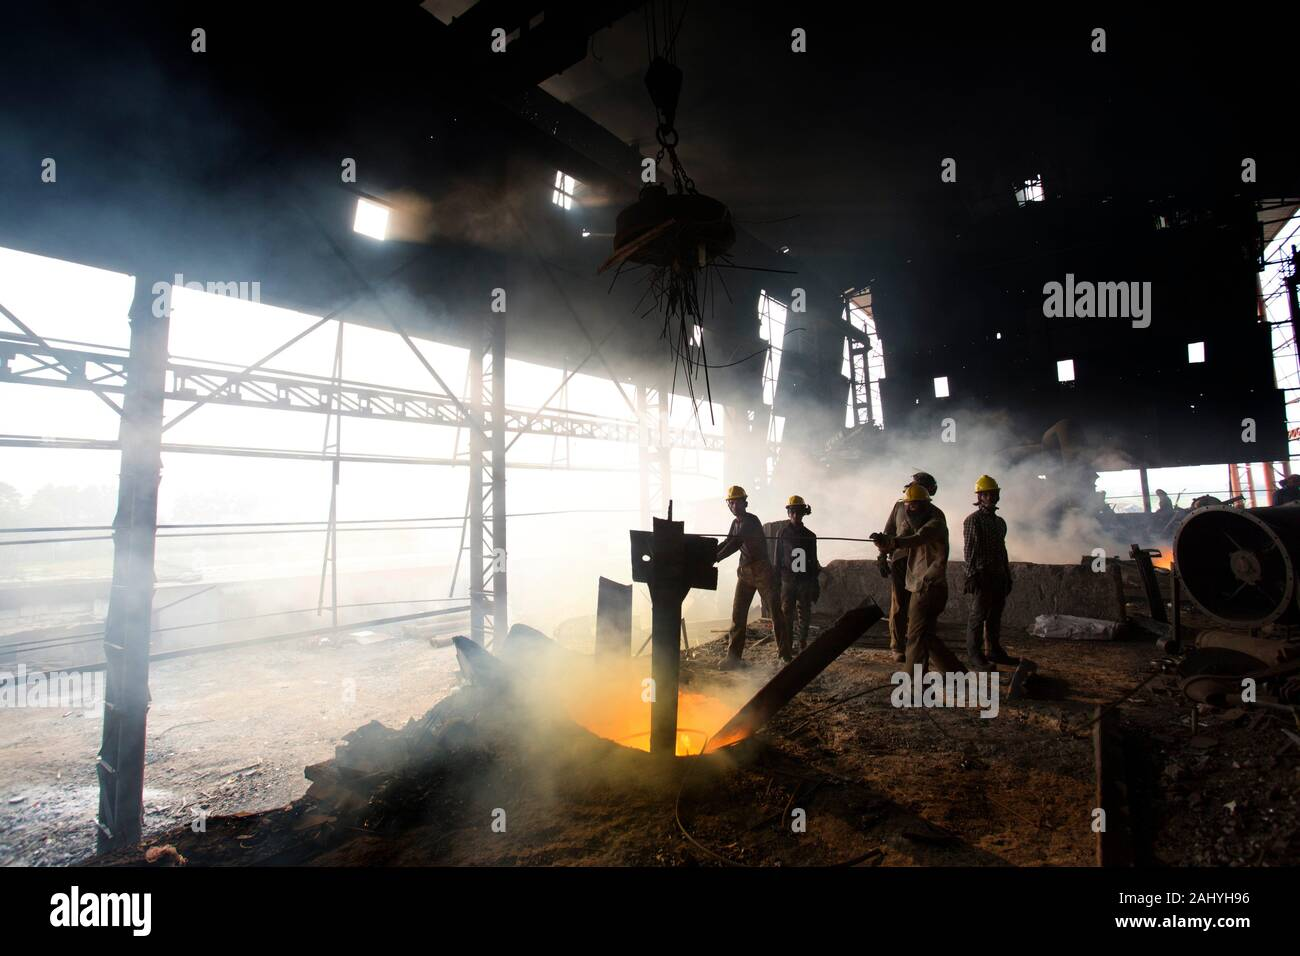 Blast furnace in the melt steel works, risky workers in steel factories are working at Demra, Dhaka, Bangladesh. Stock Photo